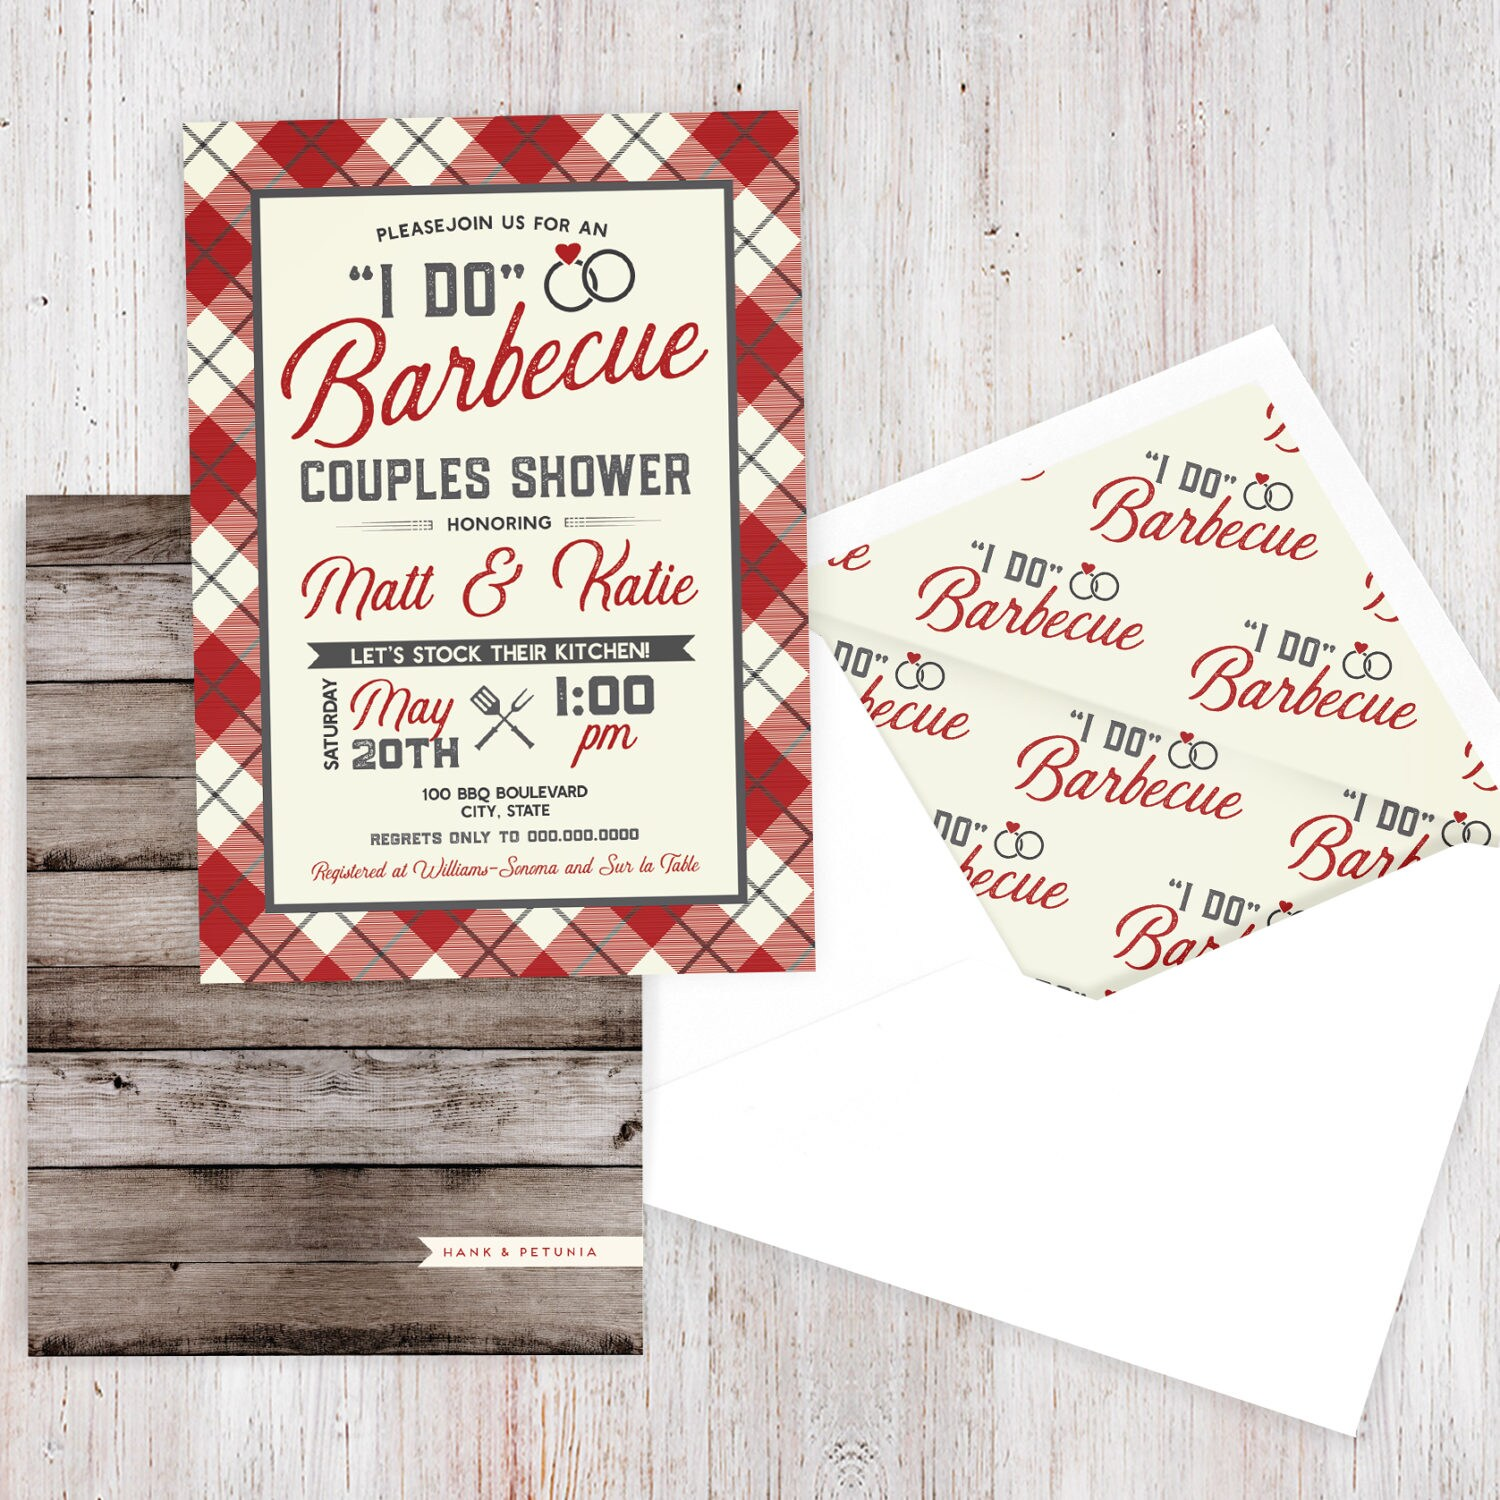 BBQ Couples Shower Invitation, Barbecue Bridal Shower Invite ...